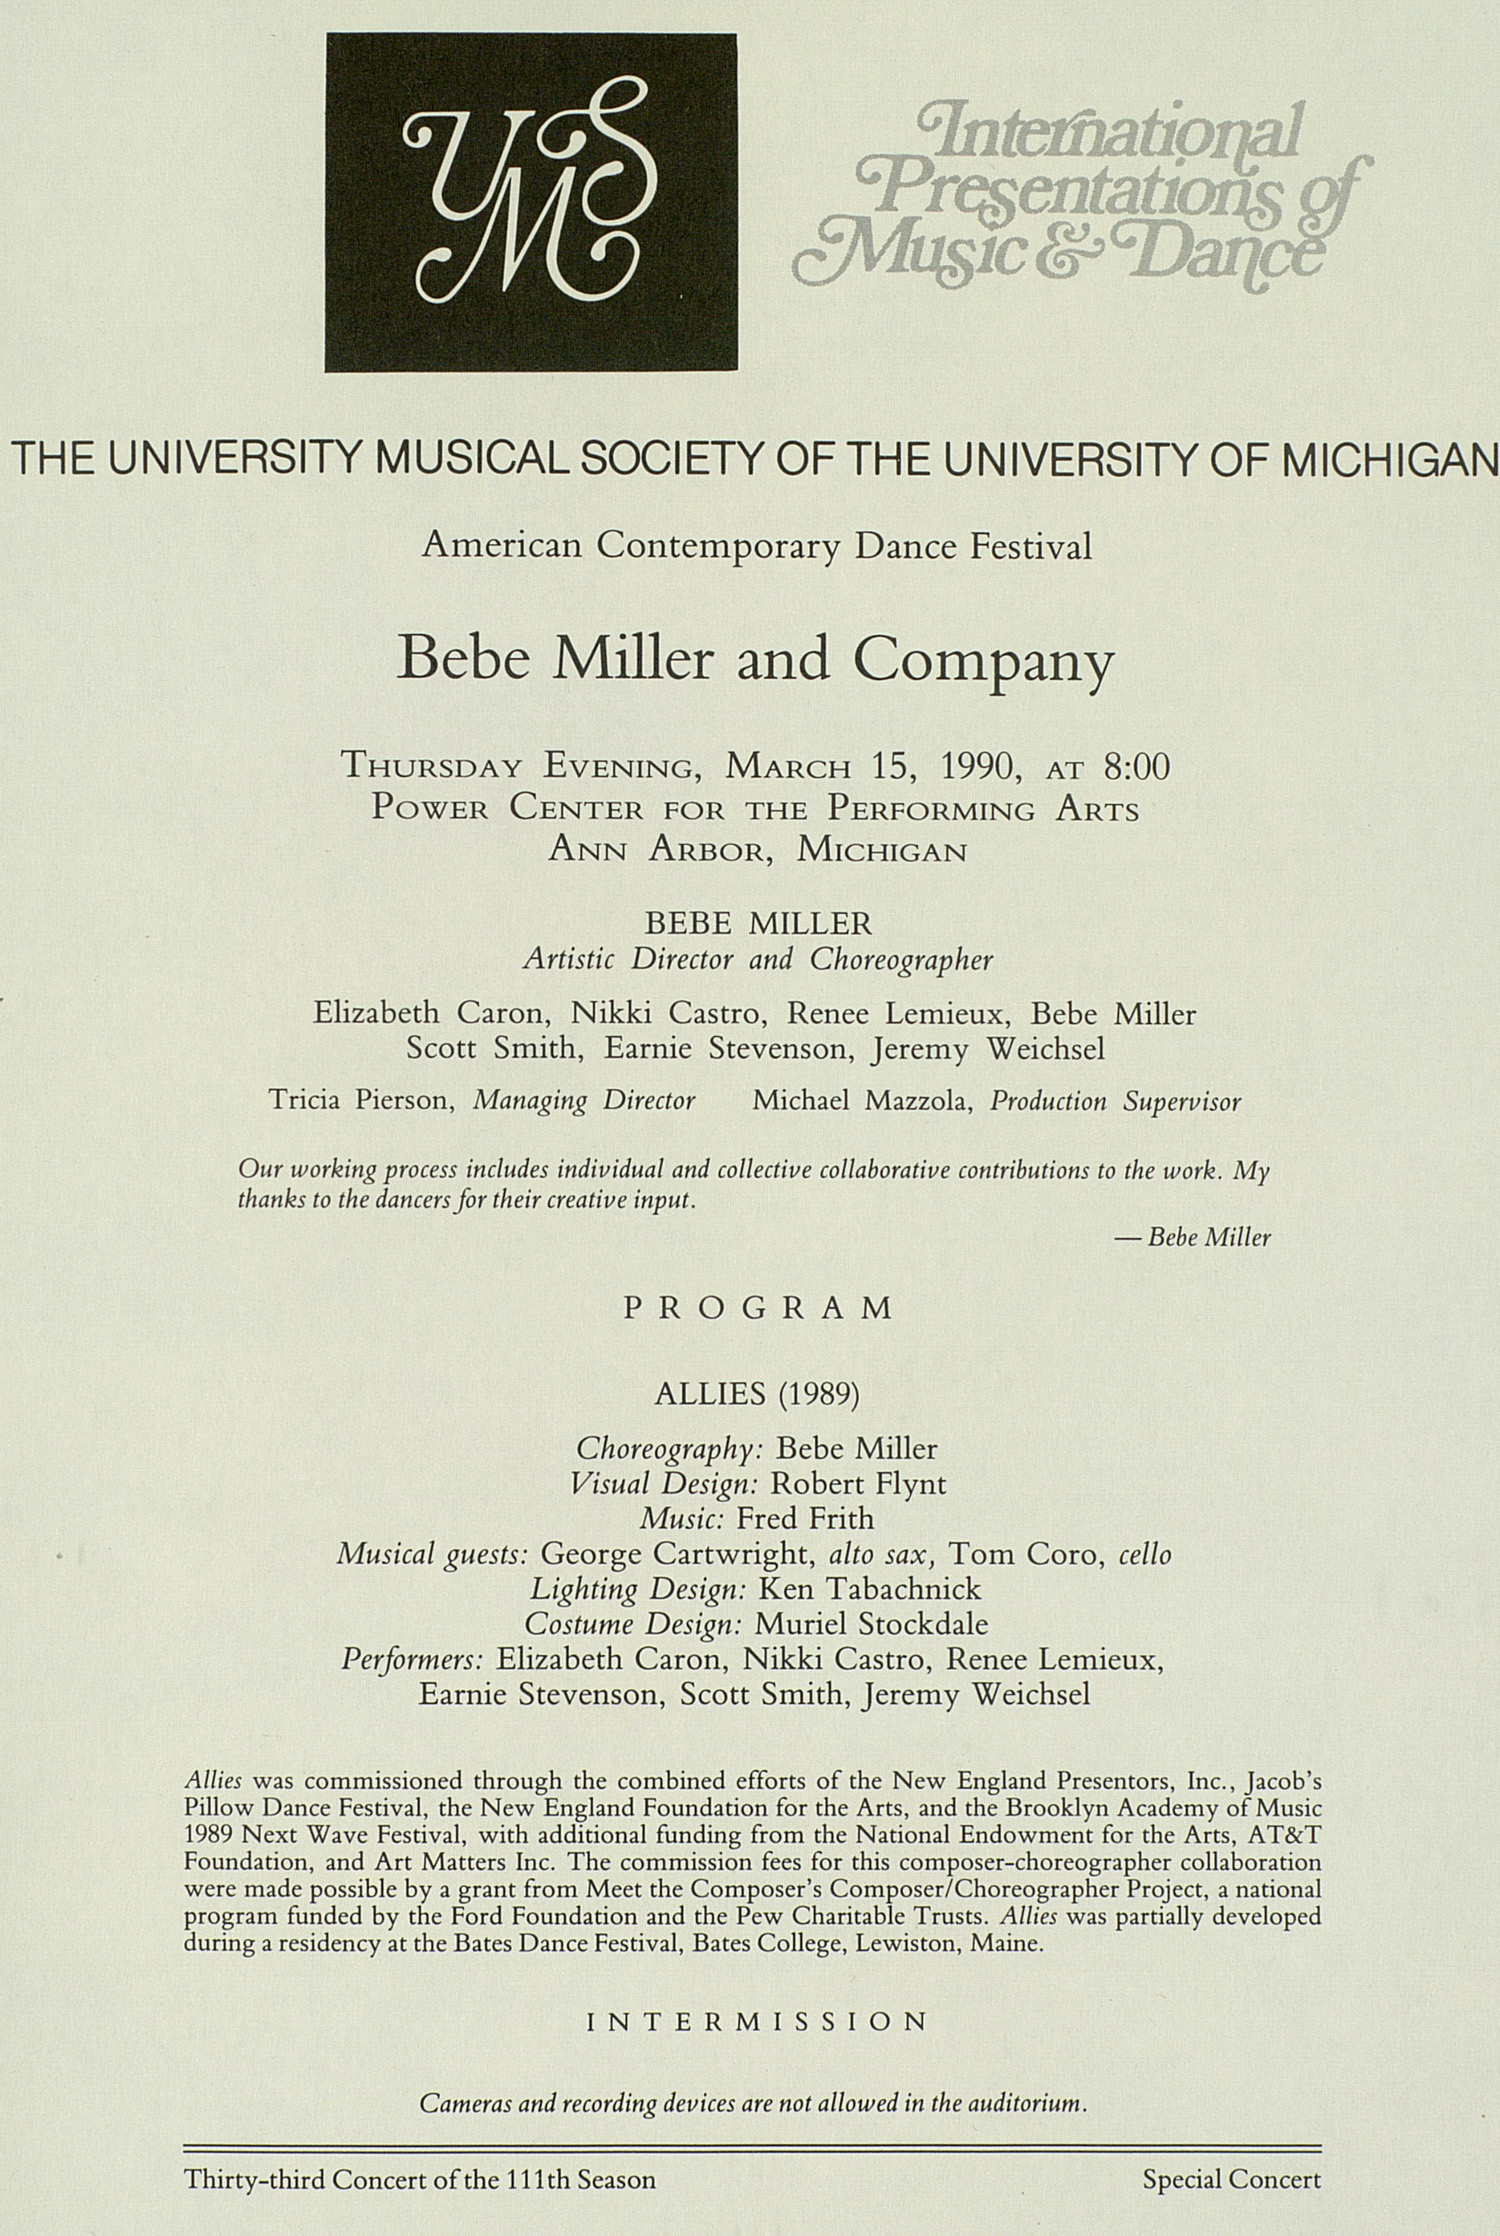 UMS Concert Program, March 15, 1990: International Presentations Of Music & Dance -- Bebe Miller And Company image